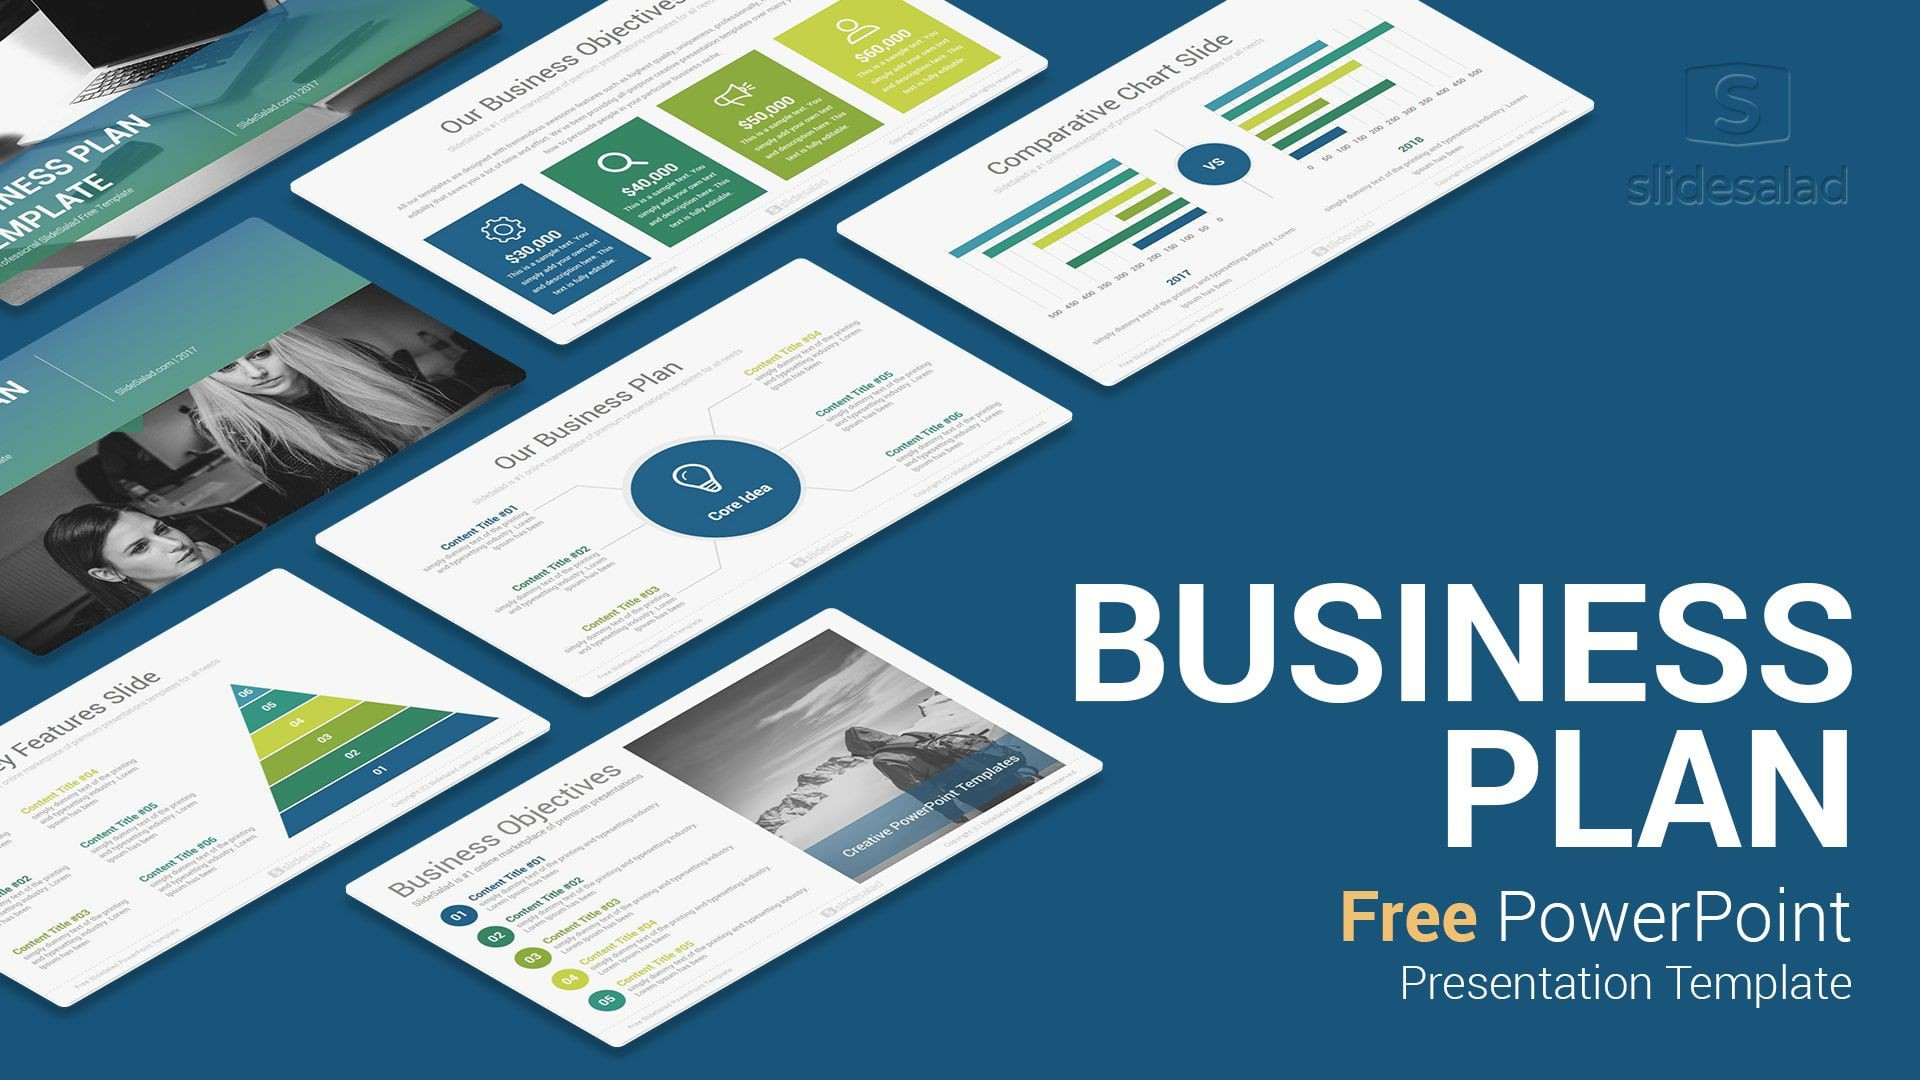 007 Best Free Busines Plan Template Ppt High Definition  2020 Download Startup 30 60 901920